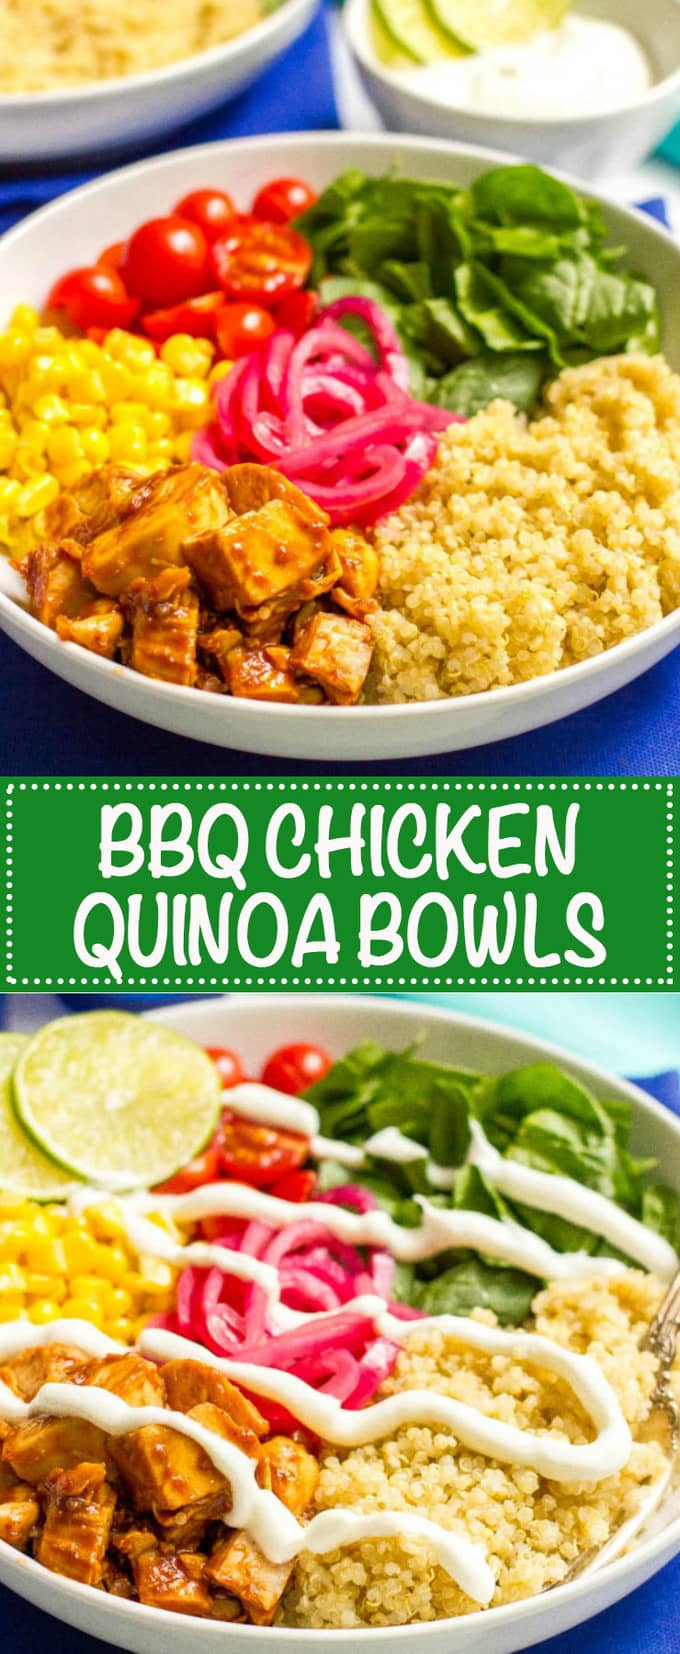 bbq chicken quinoa salad bowls are full of flavor and fresh veggies and make for a - Salad Bowls